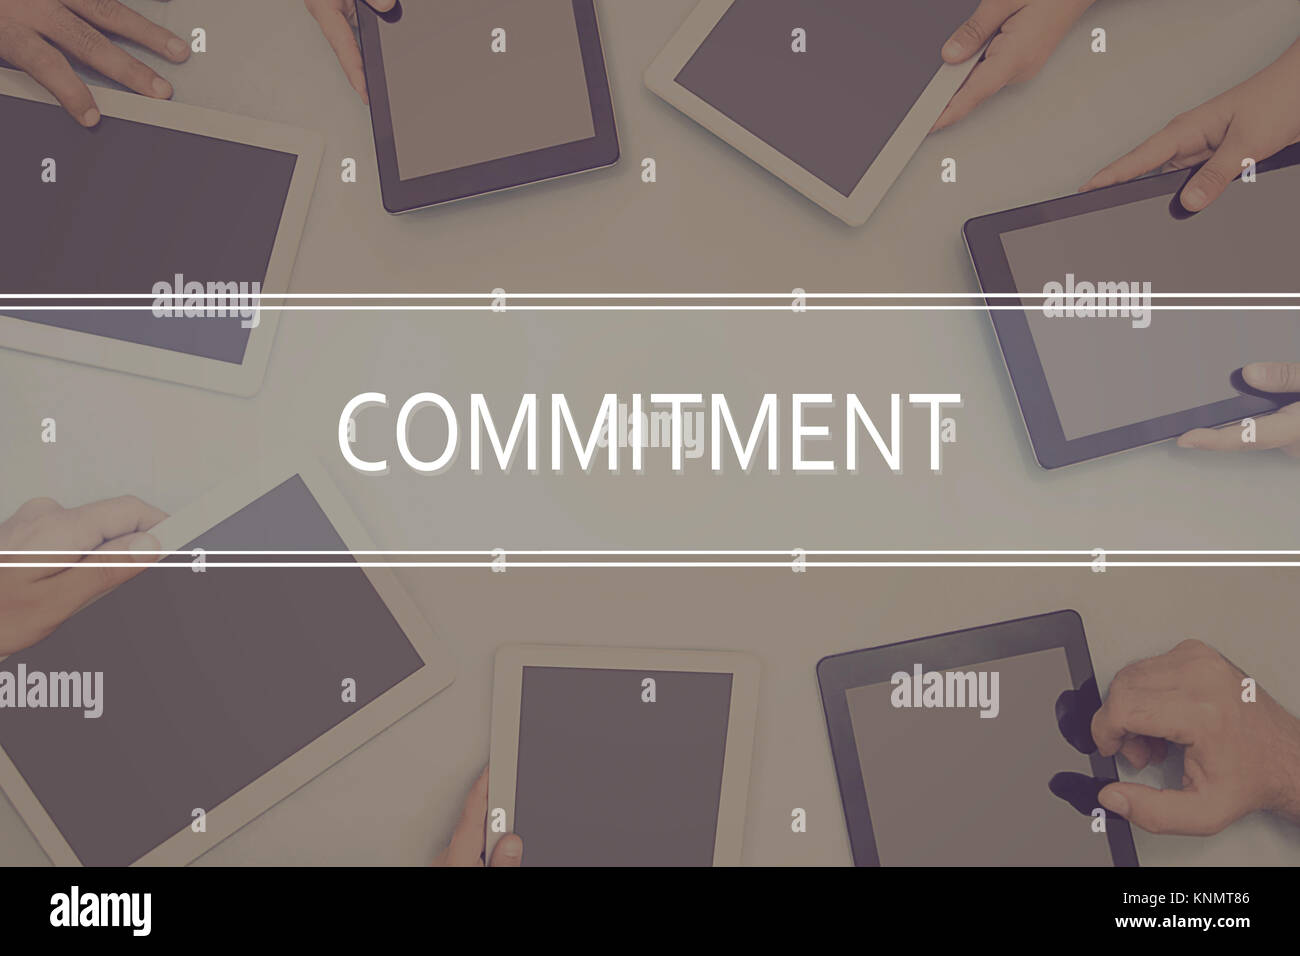 COMMITMENT CONCEPT Business Concept. - Stock Image